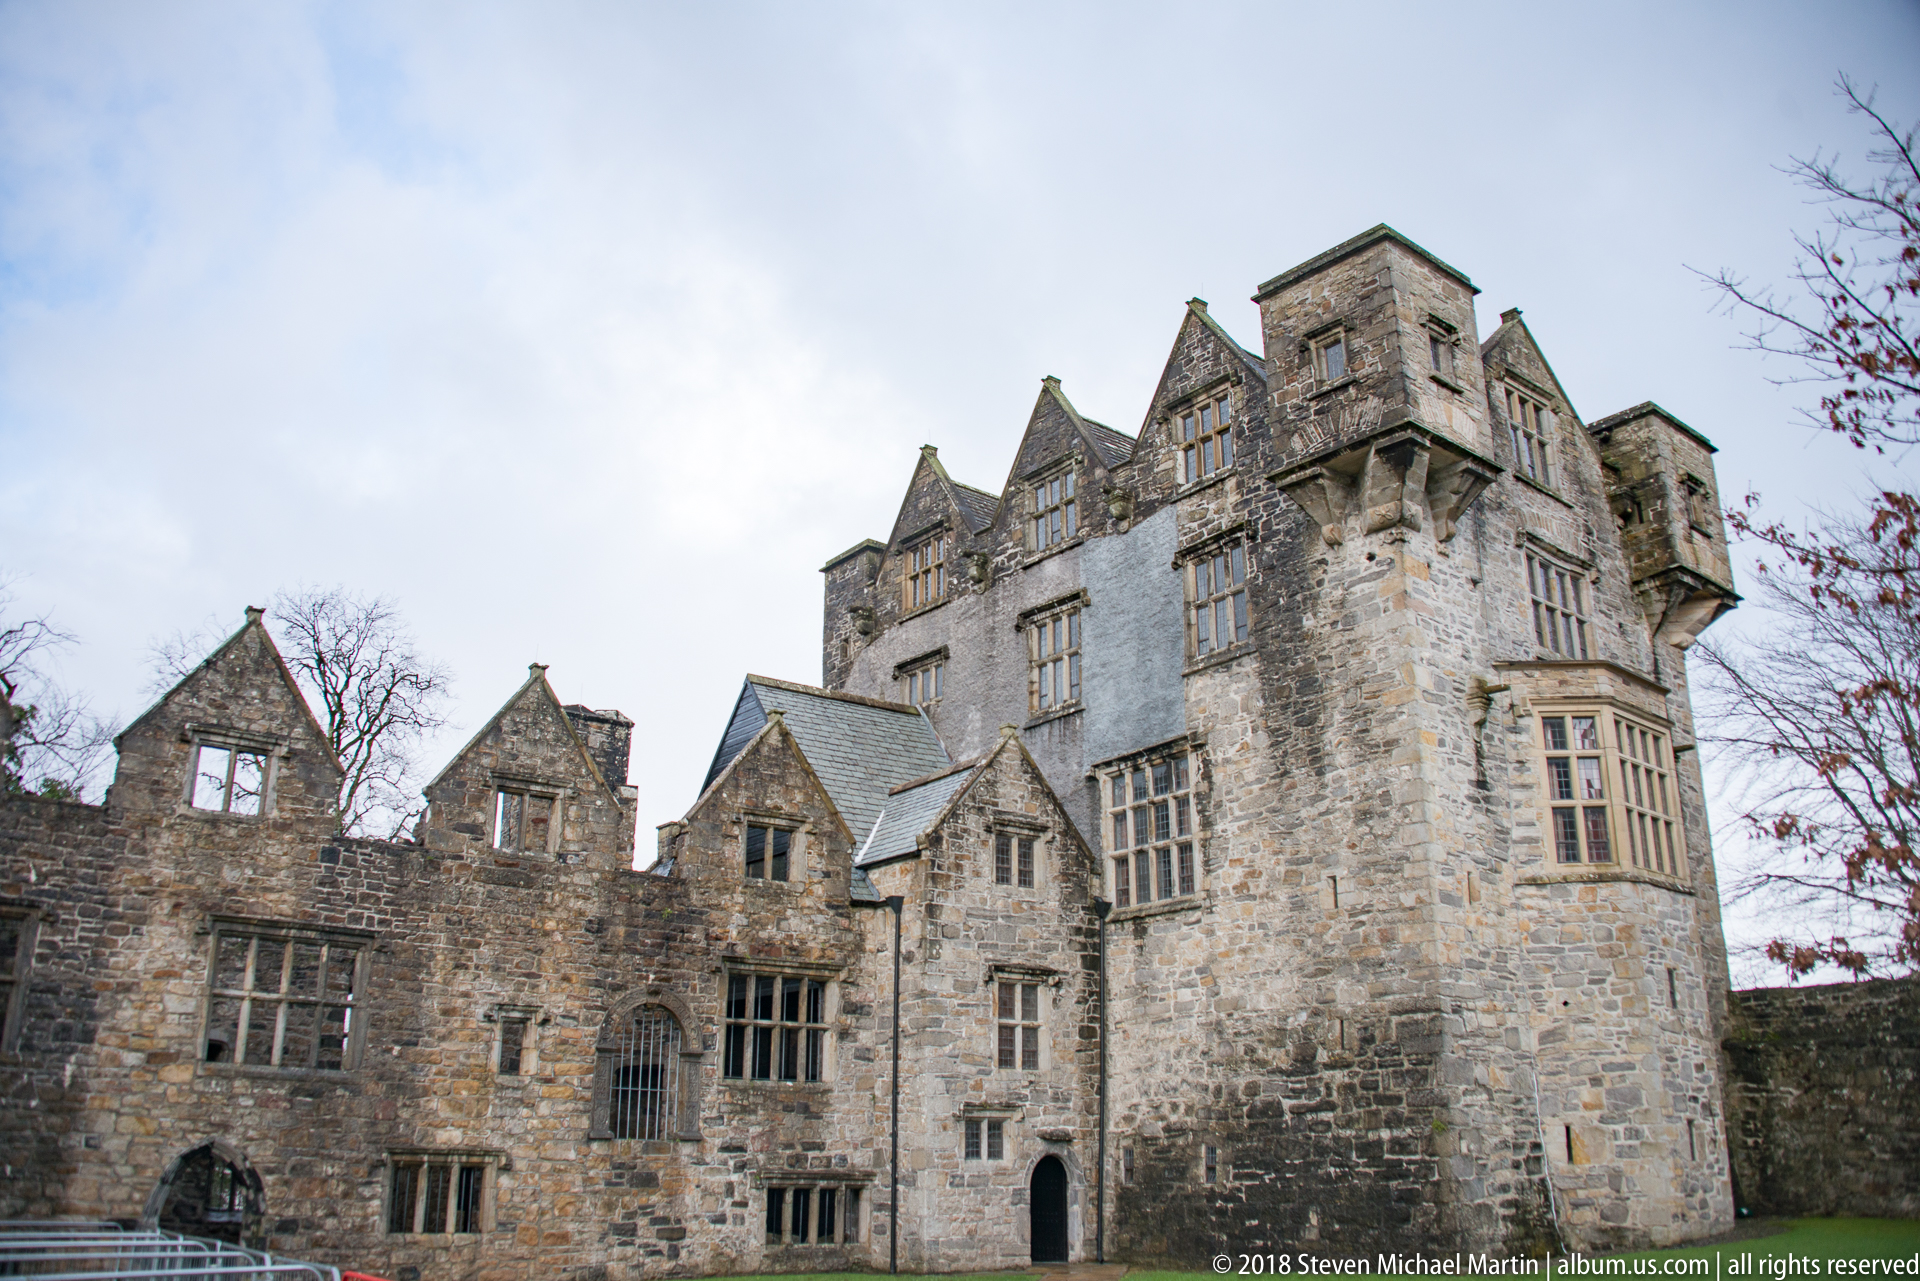 SMartin_2018 Ireland Donegal Castle (43 of 44)